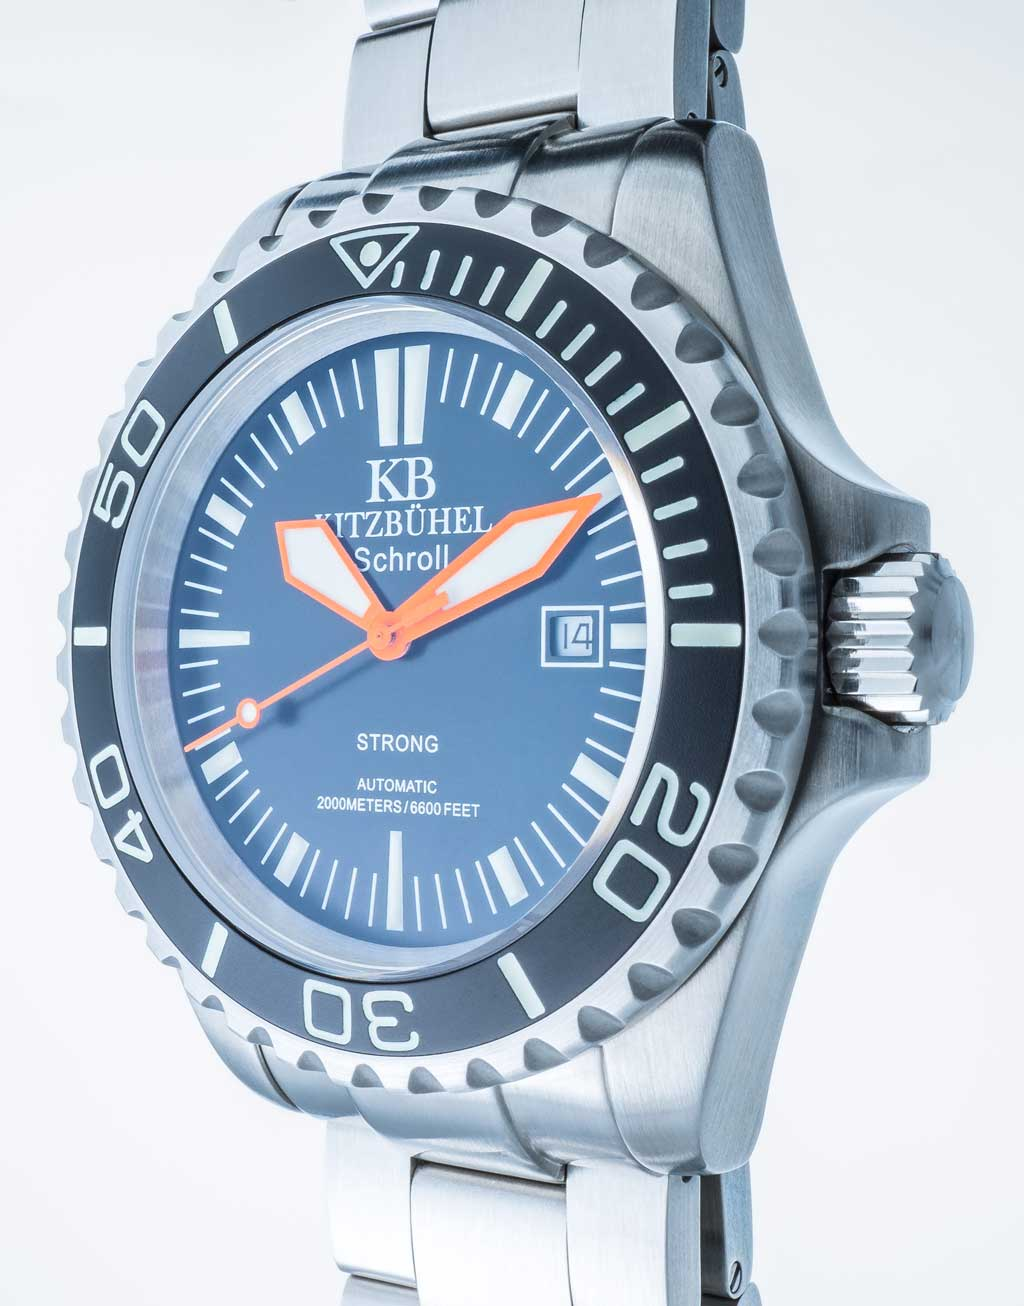 KB Watch – Strong